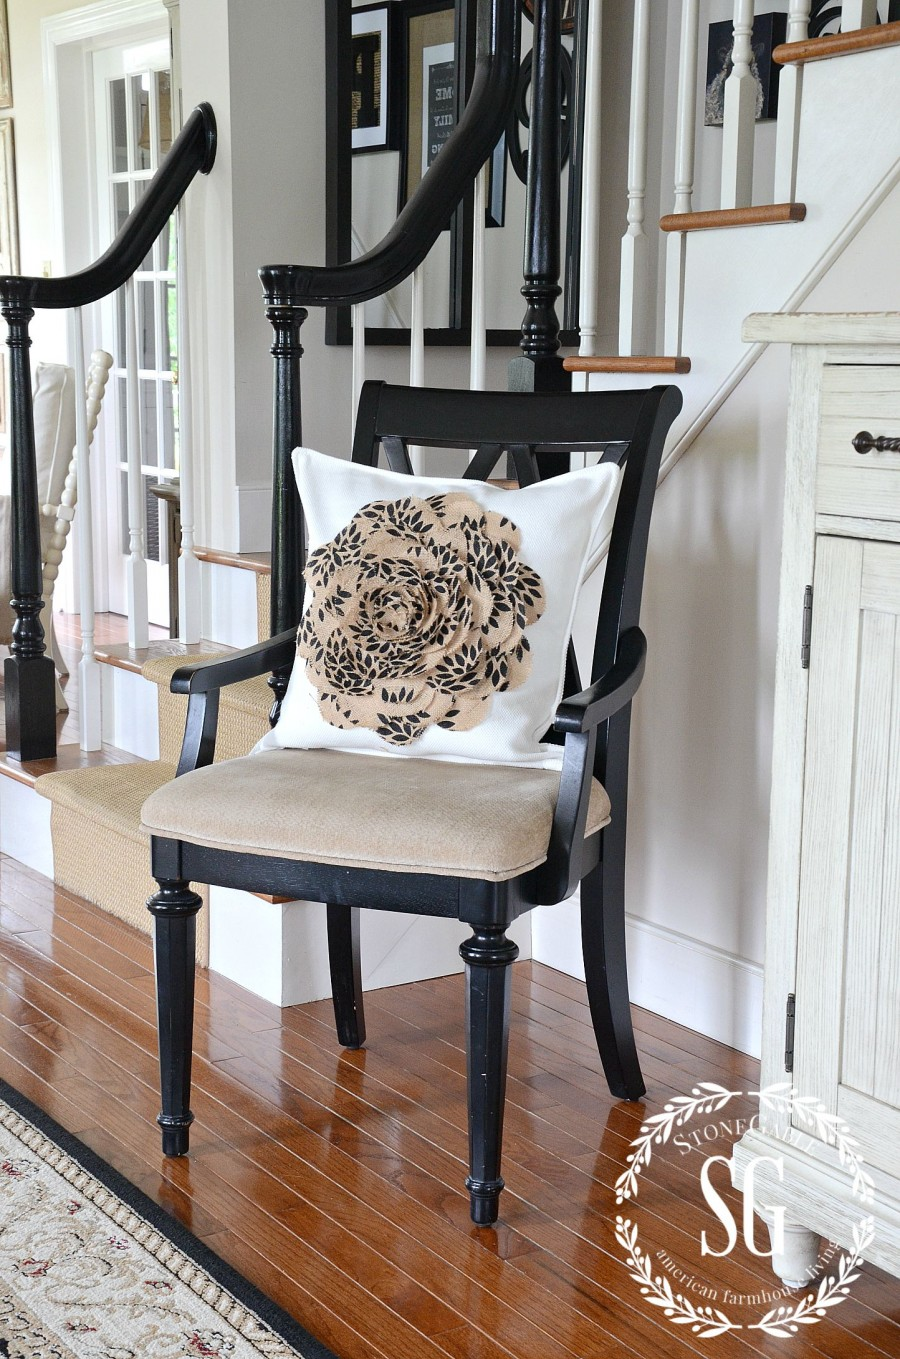 USING BURLAP IN HOME DECOR-Burlap is a classic and here to stay. Here are some helpful tips for decorating with it.-stonegableblog.com